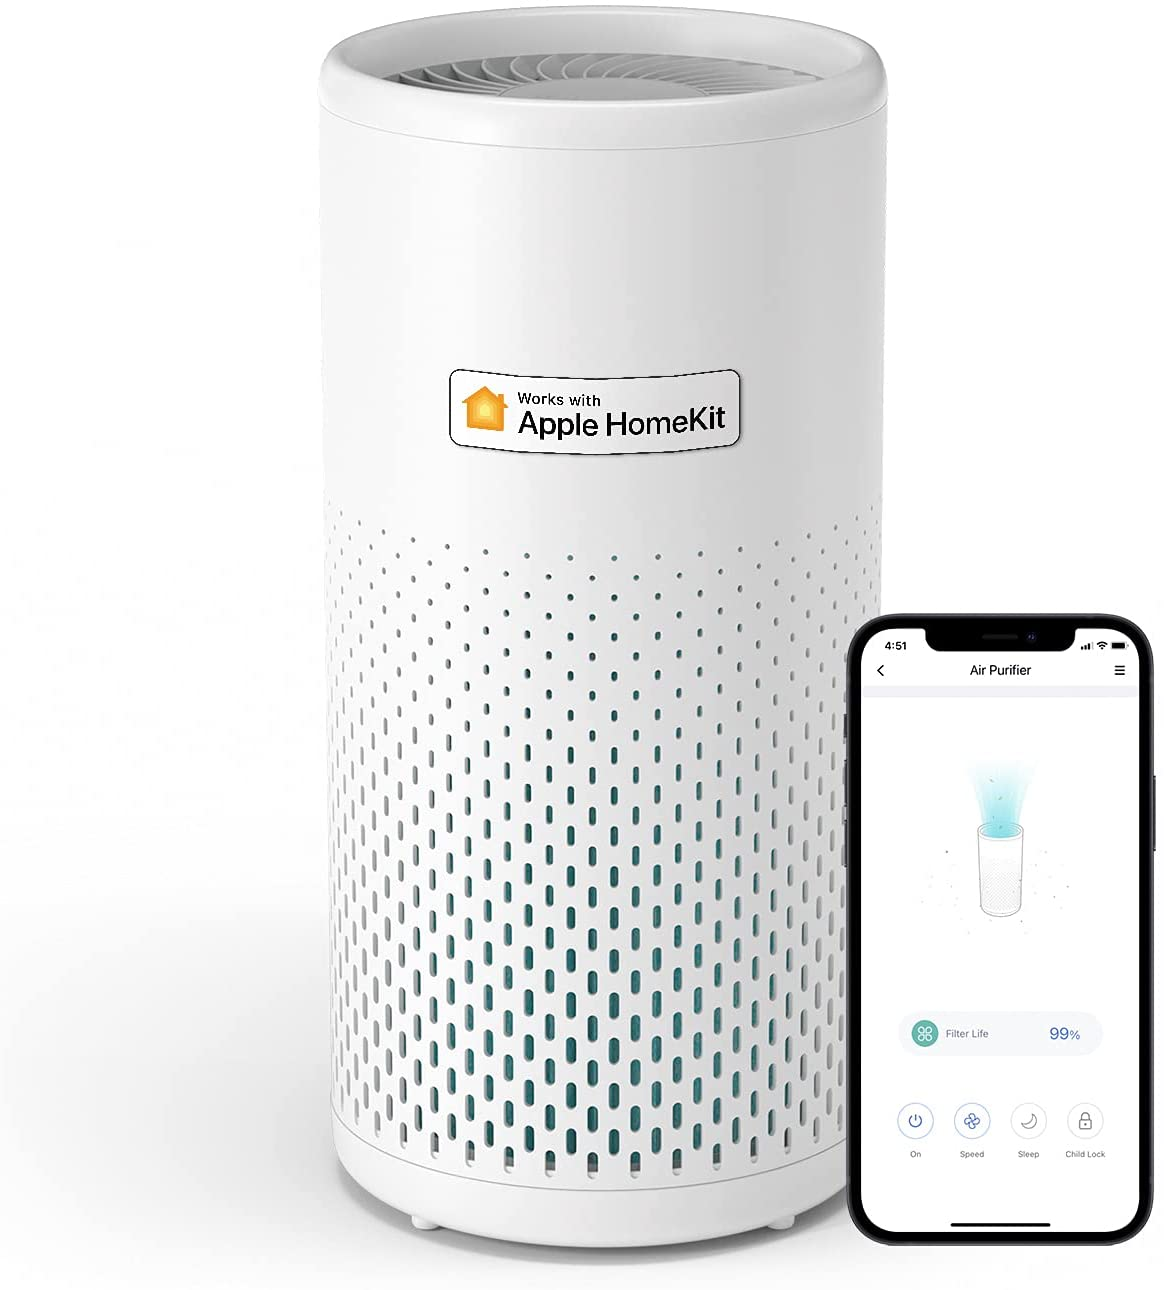 The new Meross MAP100 Smart Wi-Fi Air Purifier works with HomeKit.